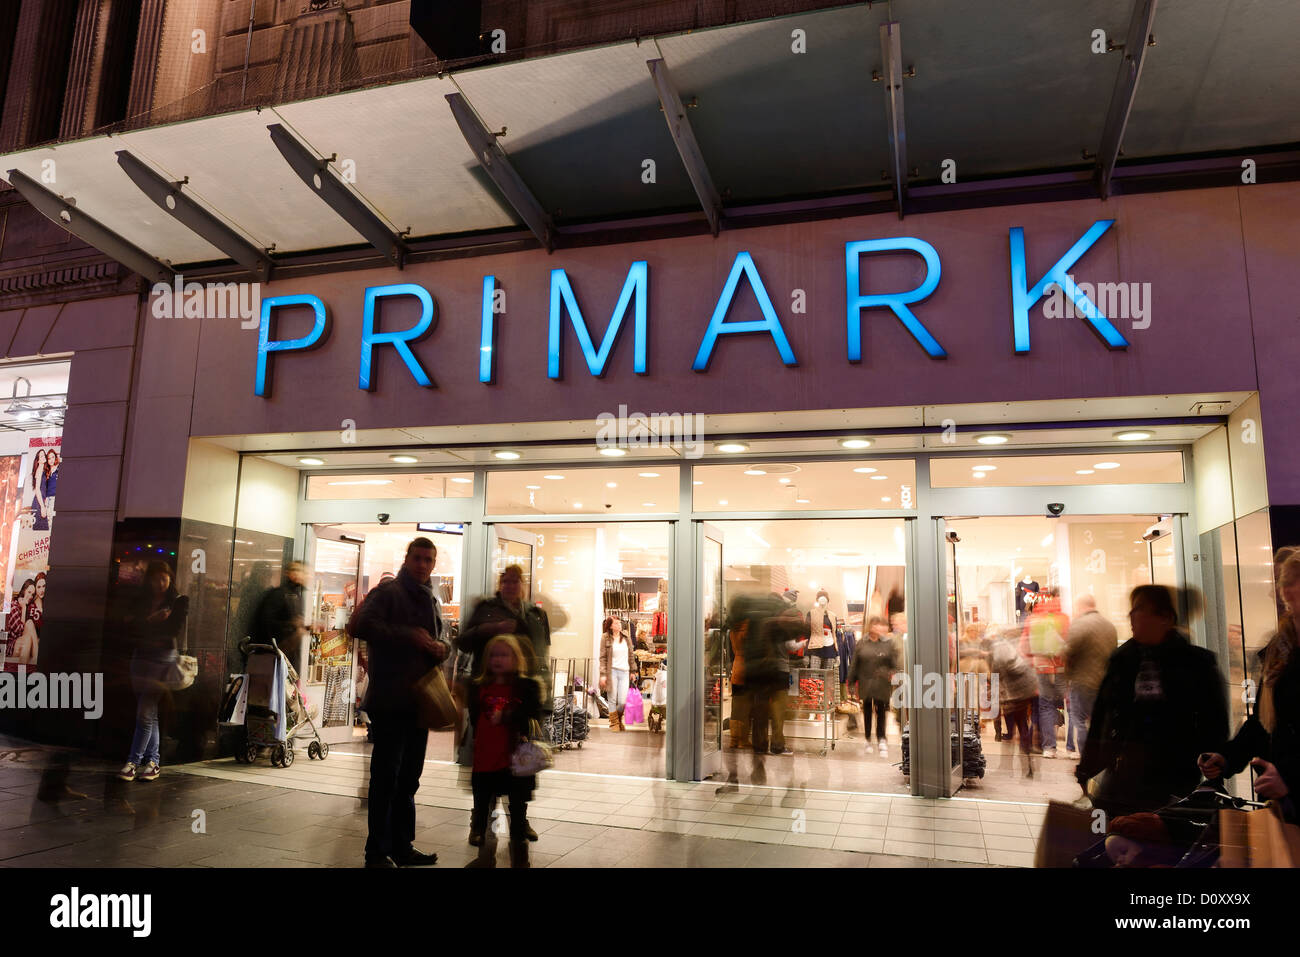 Shoppers at the Liverpool Primark store - Stock Image